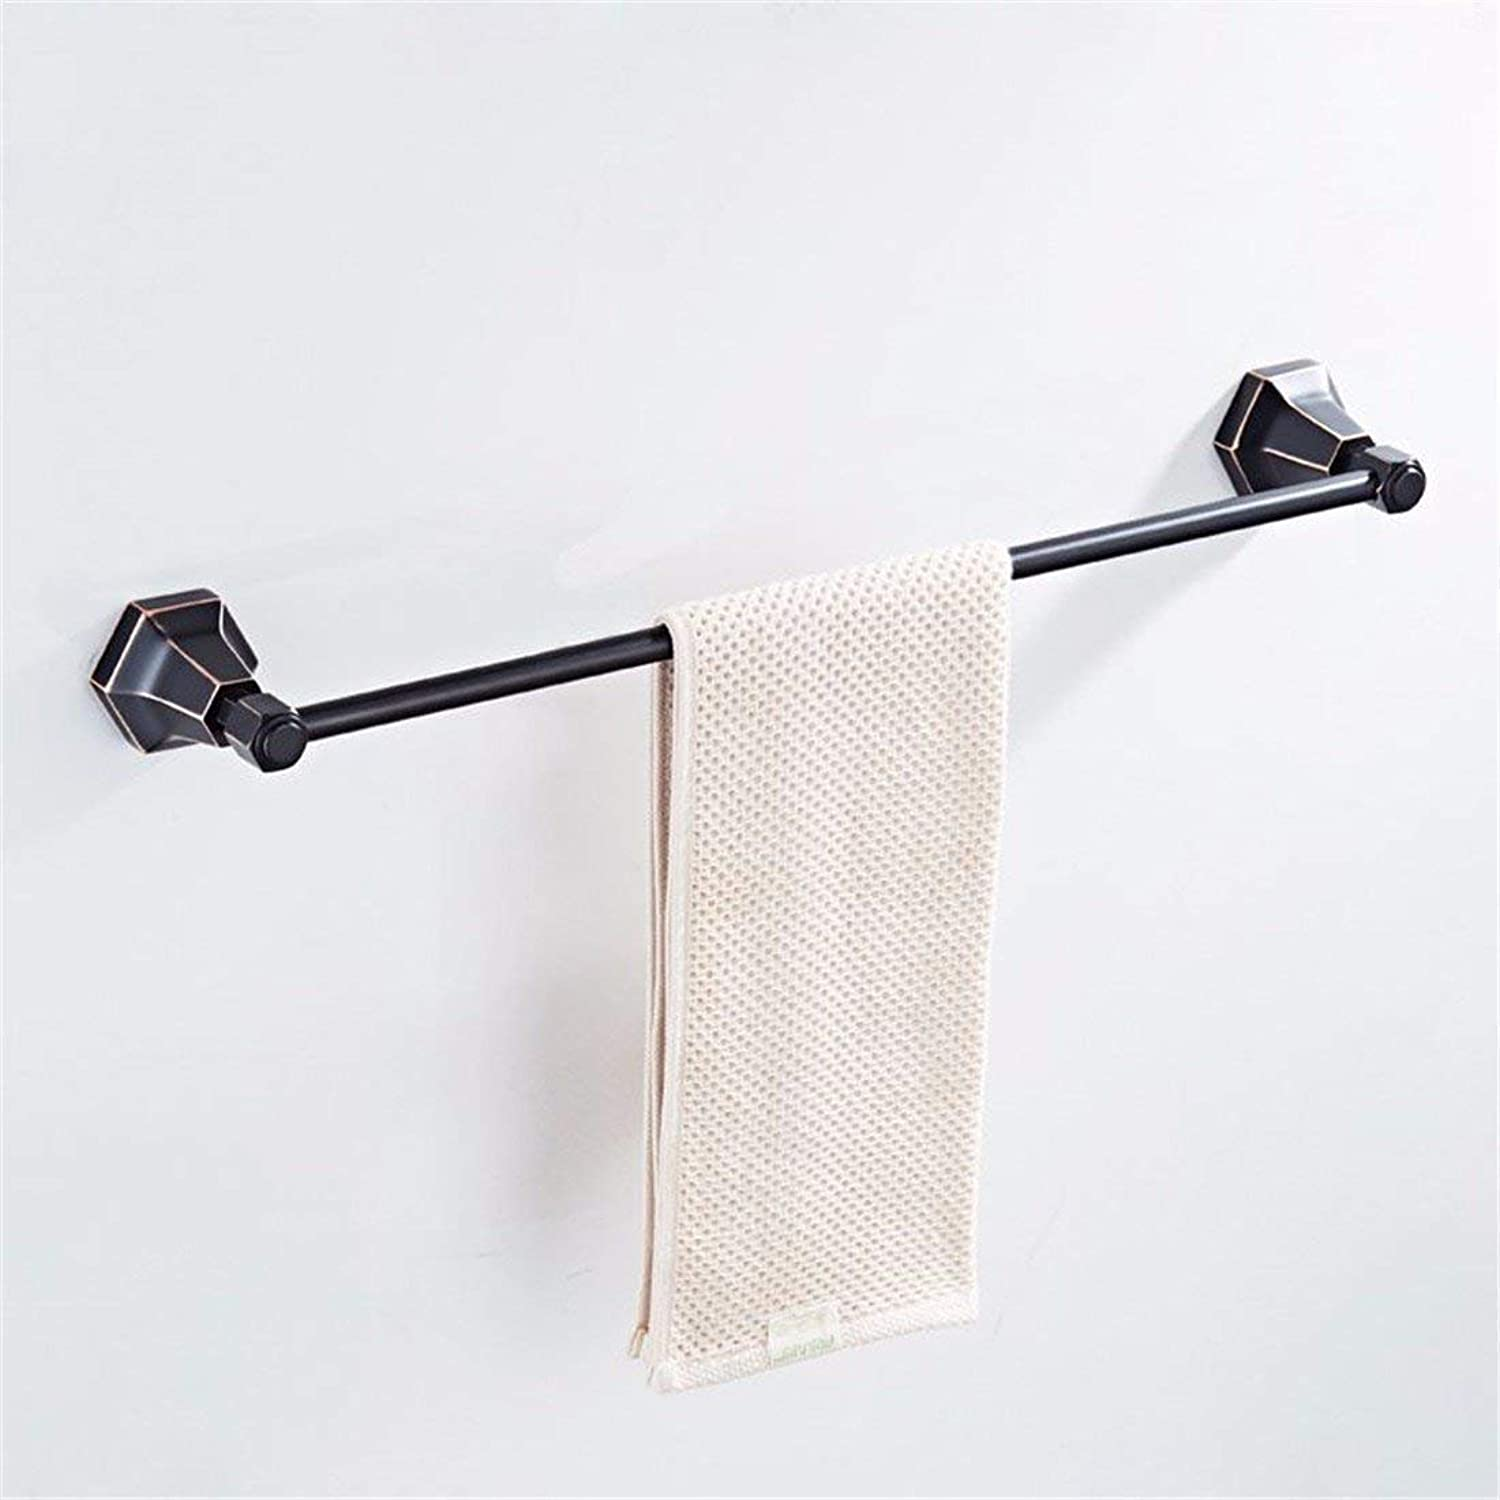 Antique Copper Full Black Gate-Towels, Accessories of House of American Style Bathtowel,Single Rod